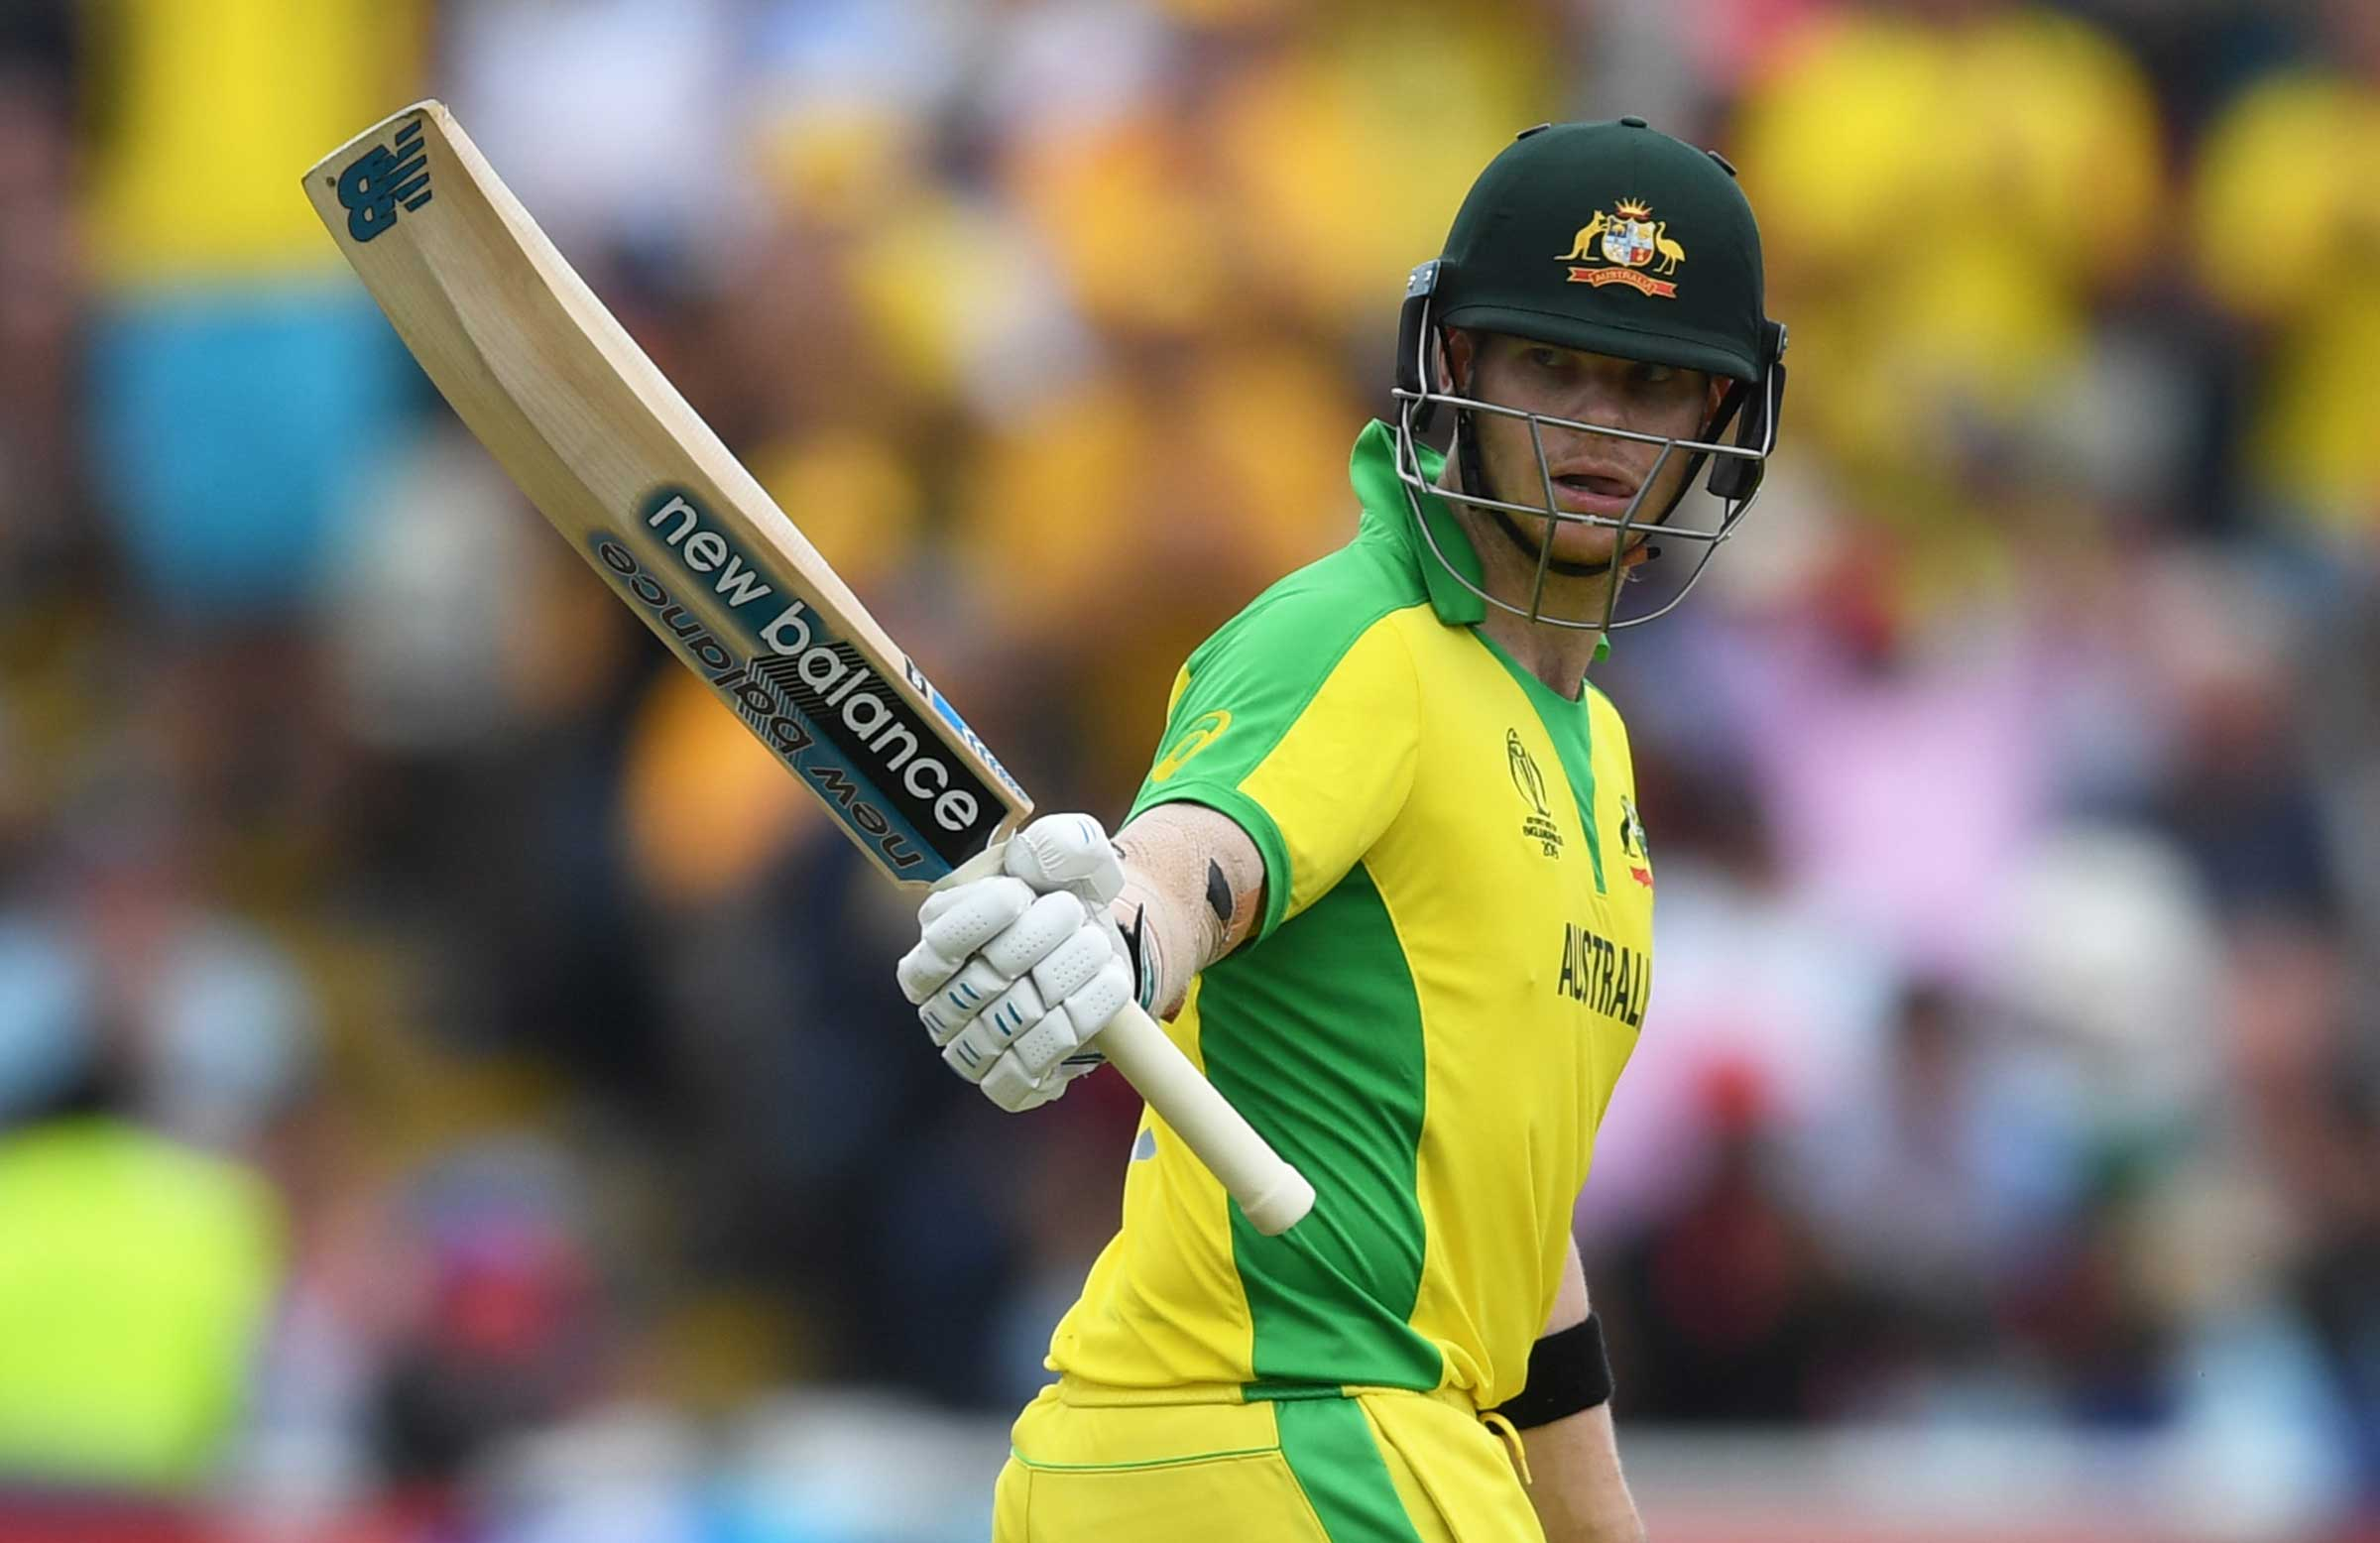 Smith has four successive 50+ scores in ICC knockout games // Getty